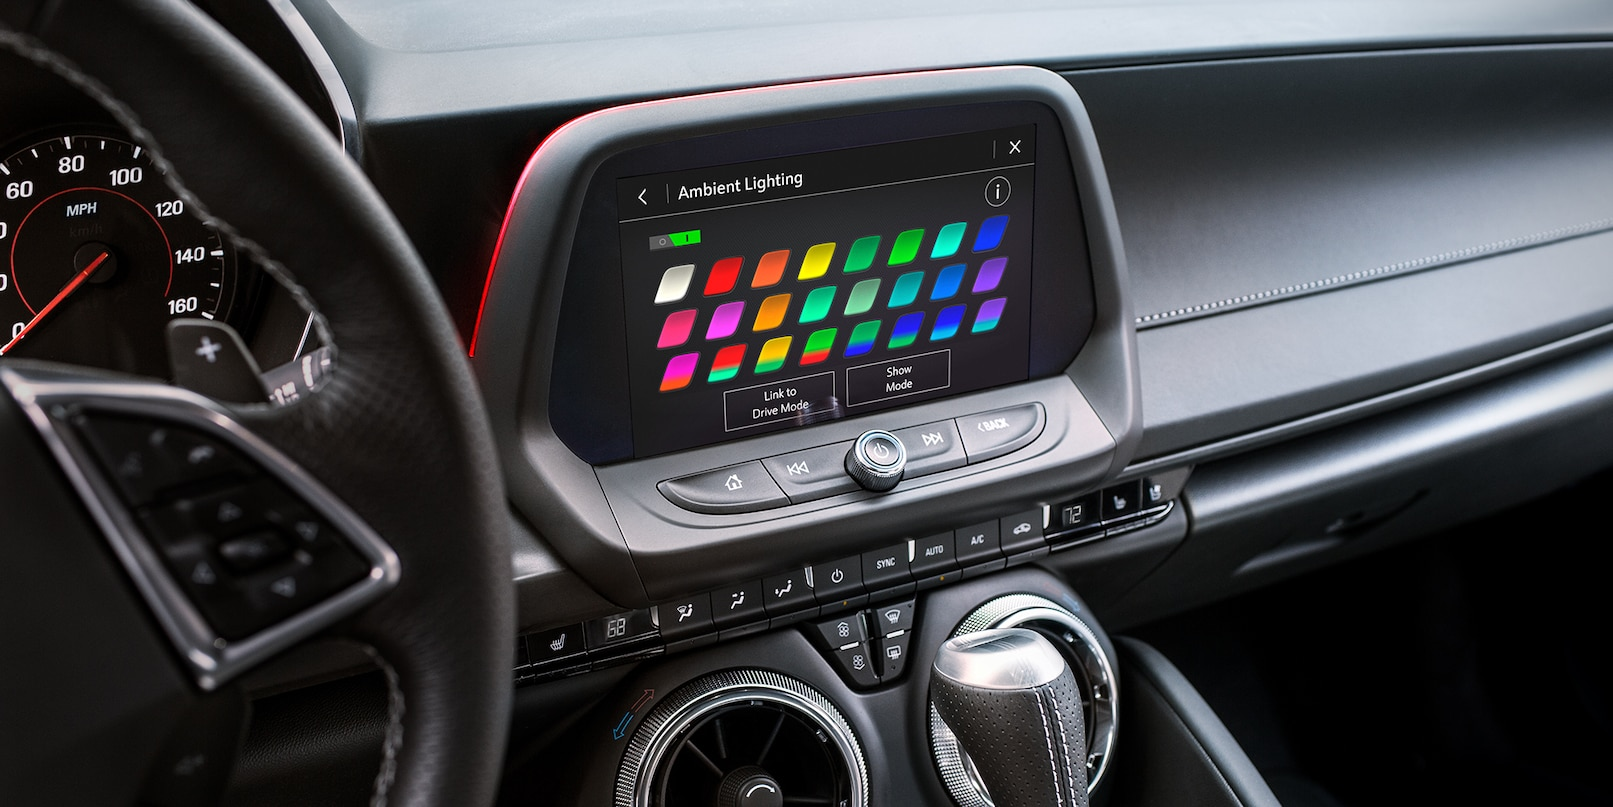 Ambient Lighting Choices in the 2019 Camaro